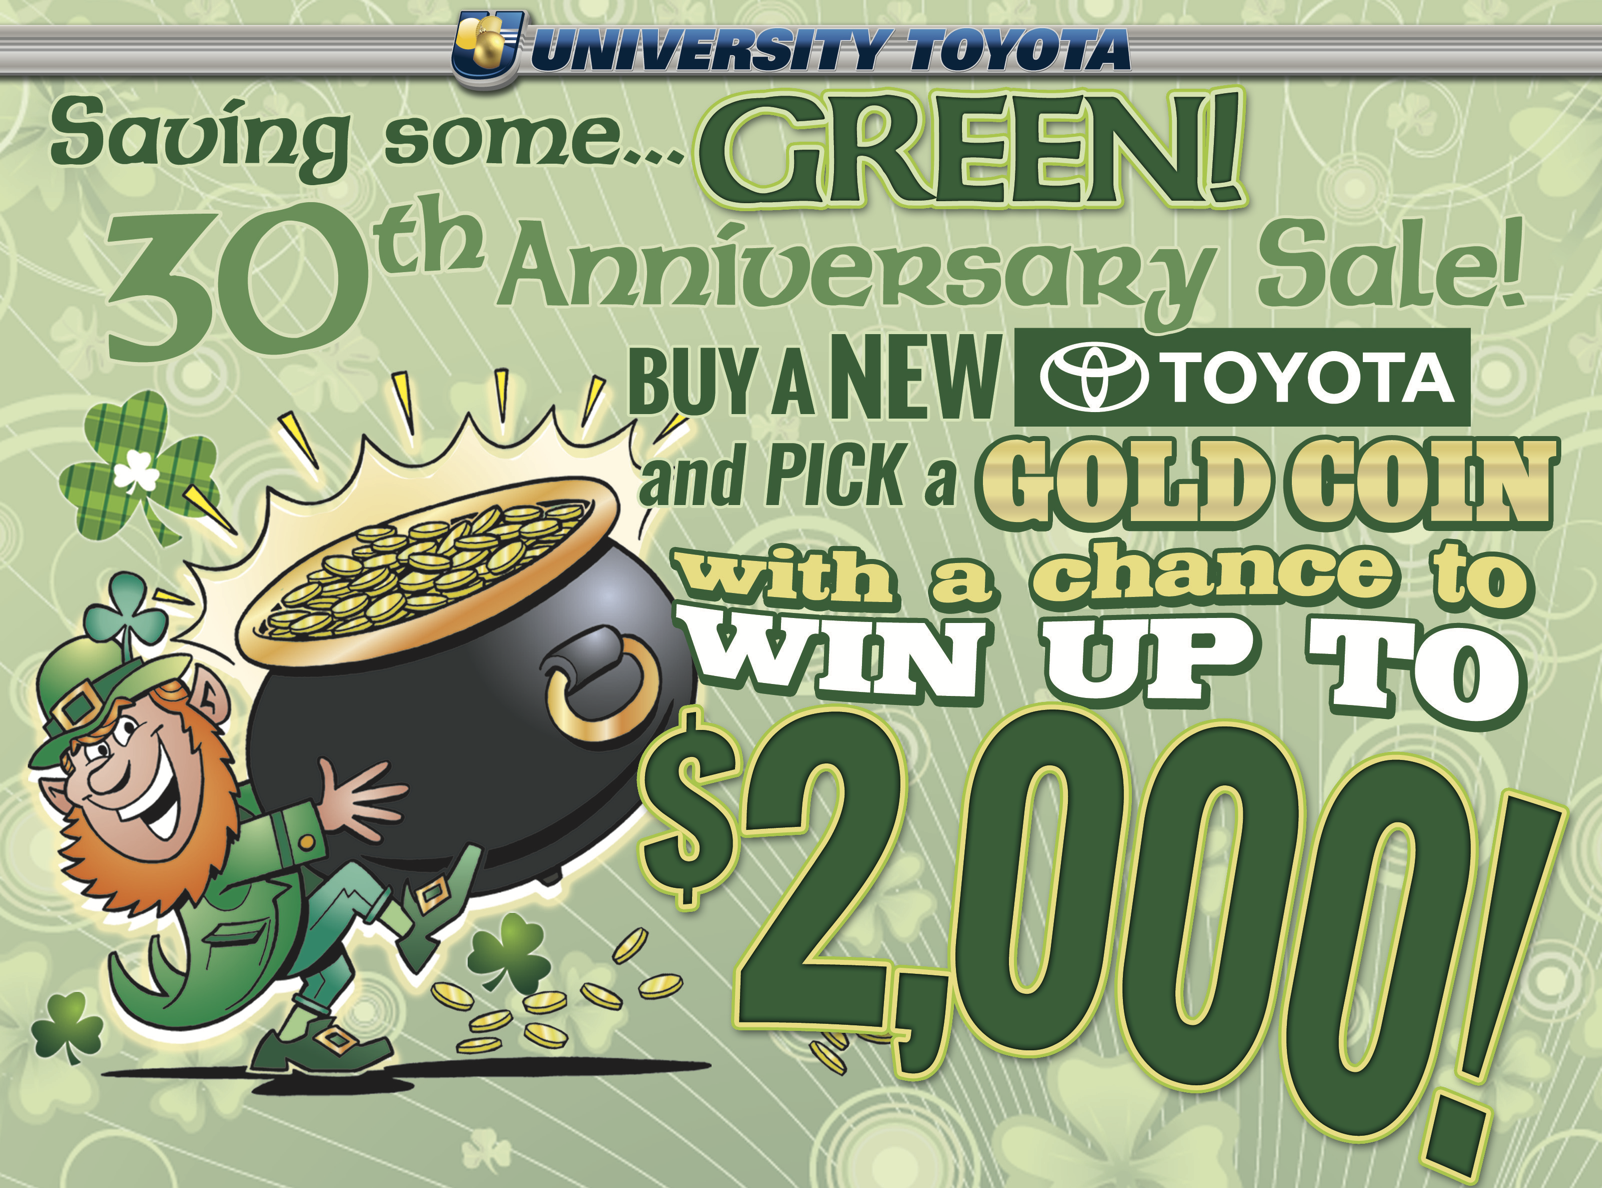 Save some green at University Toyota this March!